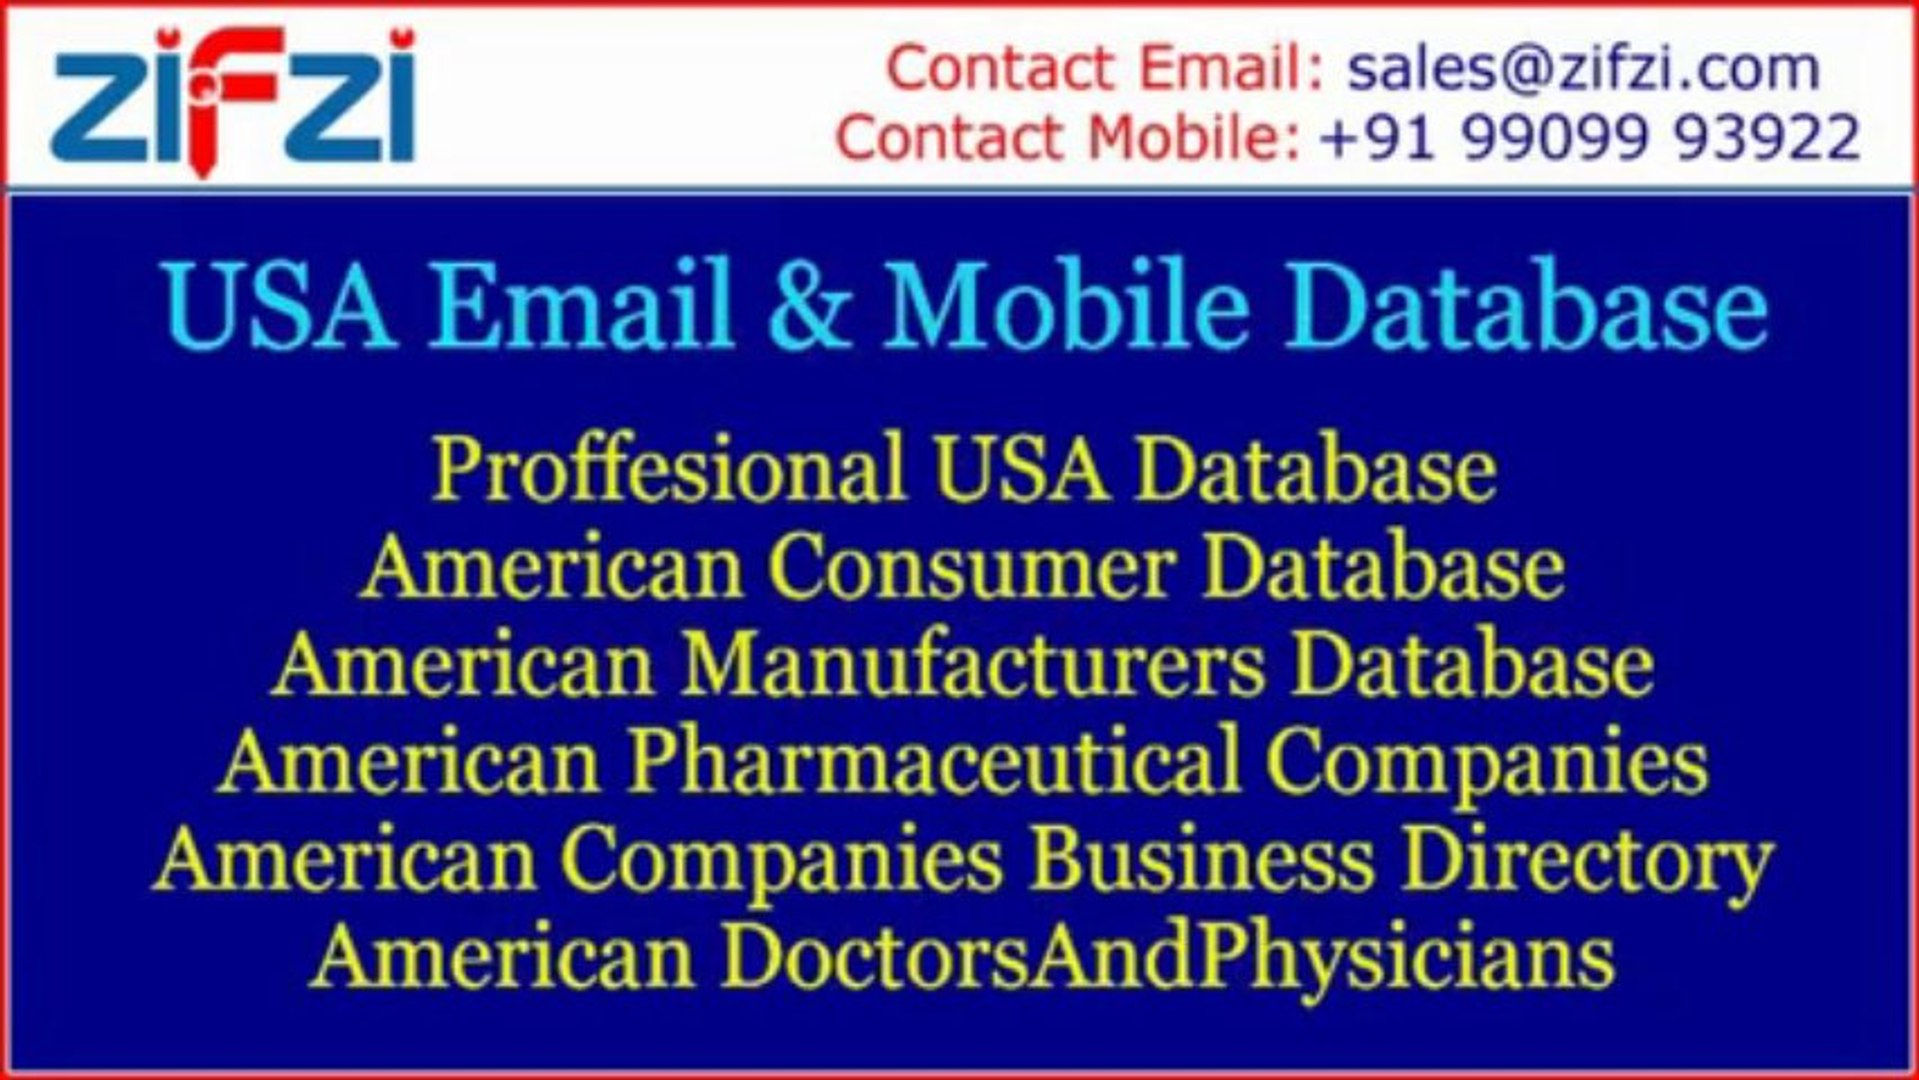 HNI database mobile number HR database email ids of all india2SN